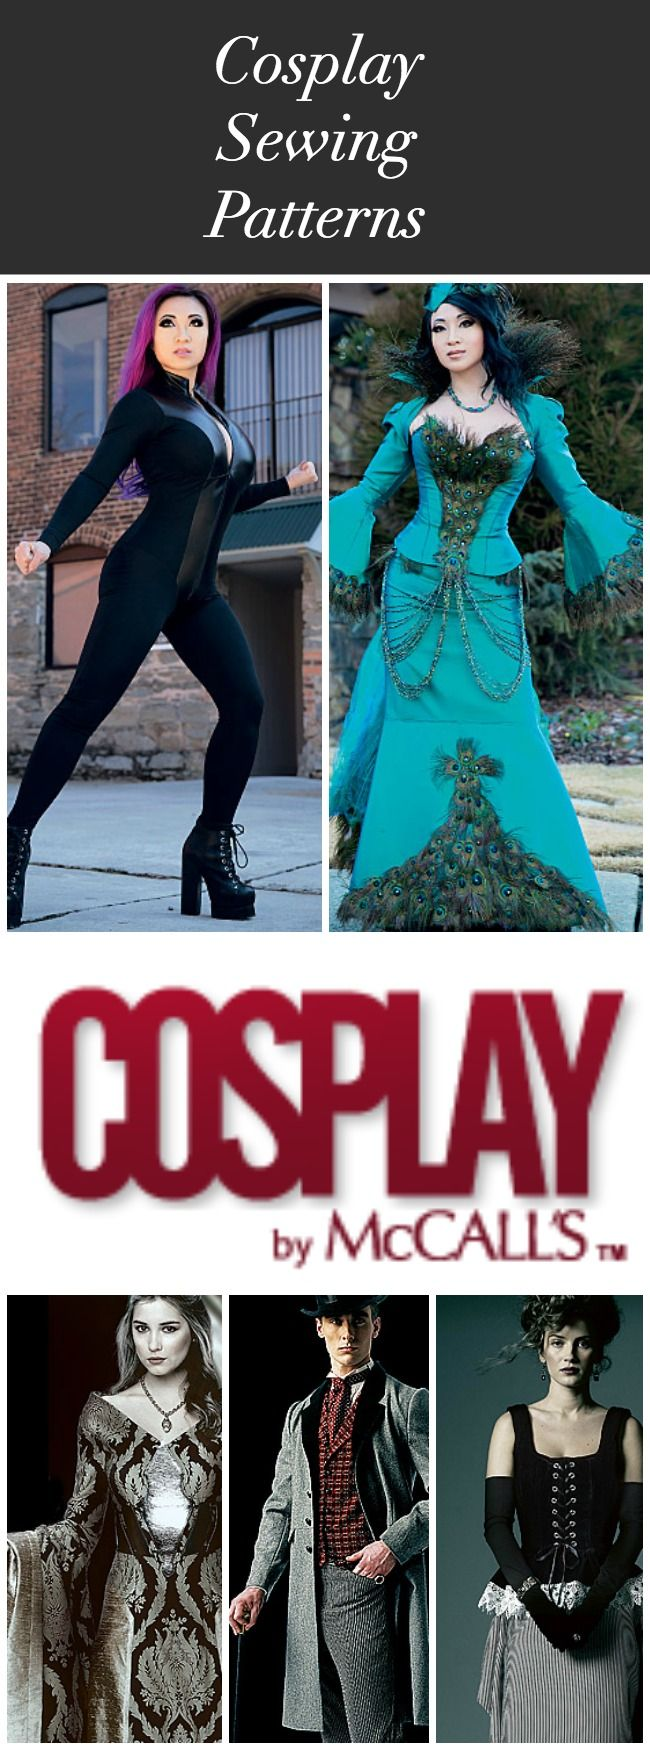 Cosplay By McCall's. The source for cosplay sewing patterns. Featuring new patterns from Yaya Han.